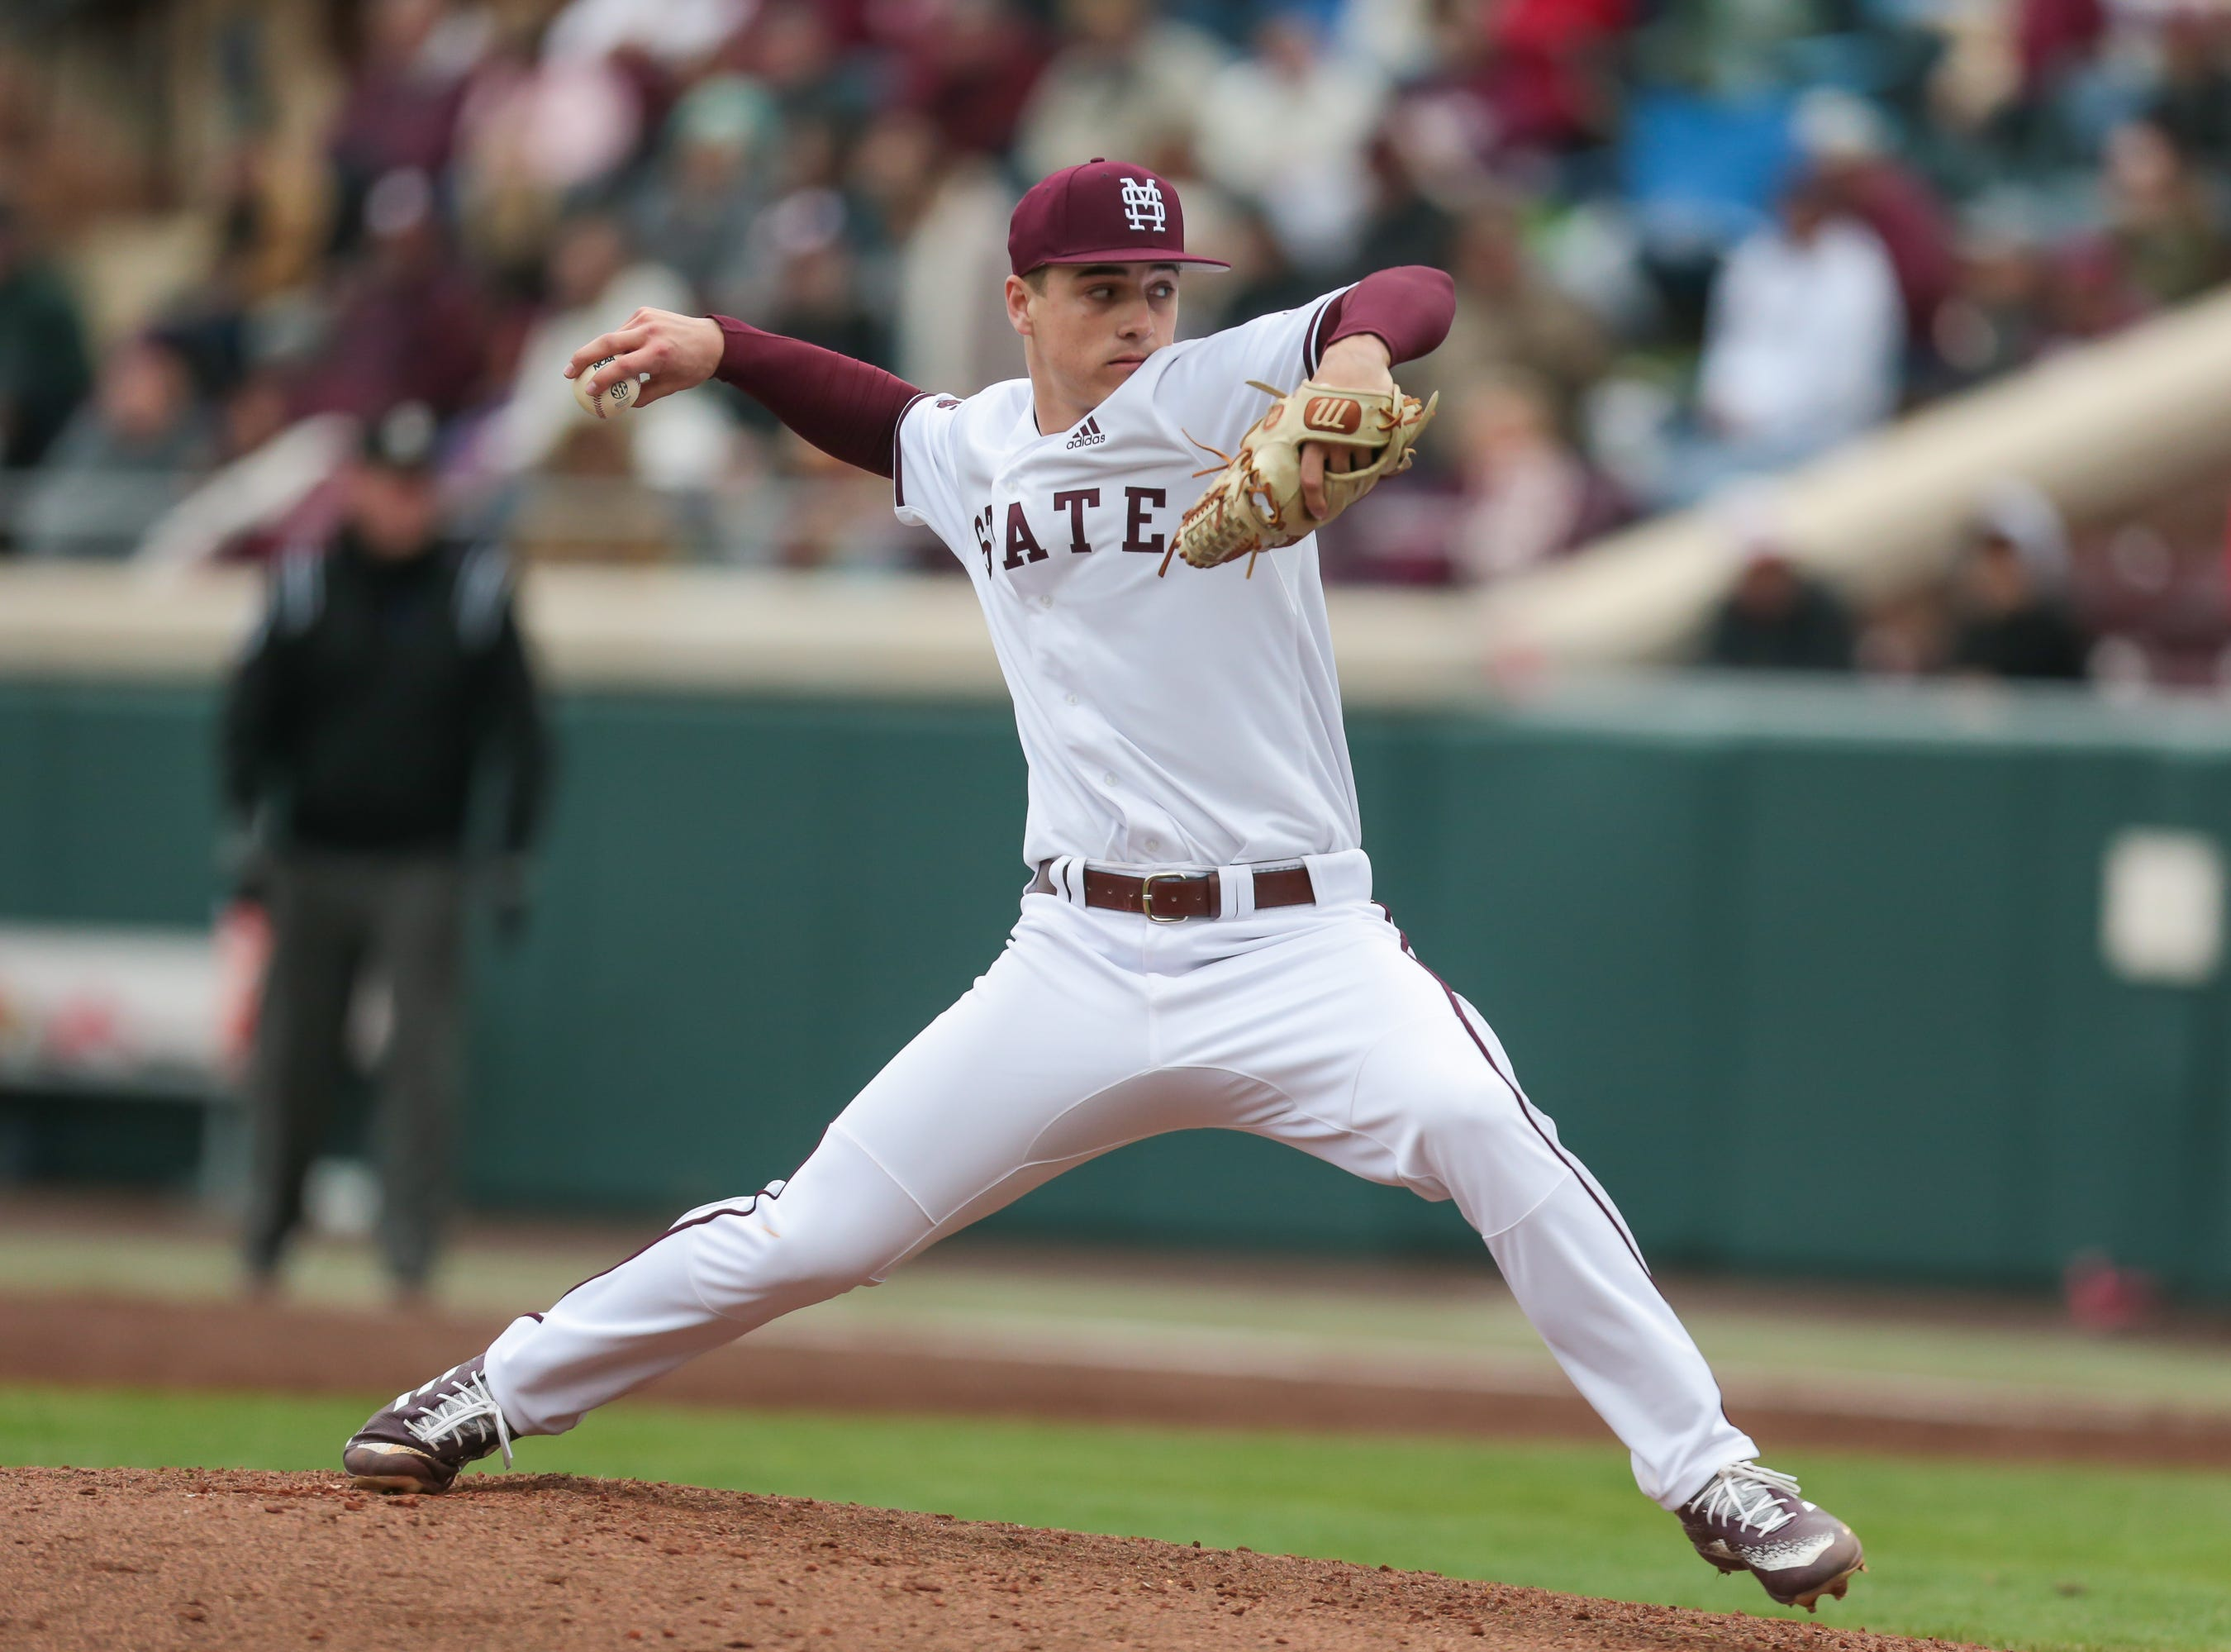 Mississippi State's J.T. Ginn (3) releases a pitch in the third inning. Mississippi State played Youngstown State on Saturday, February 16, 2019. Photo by Keith Warren